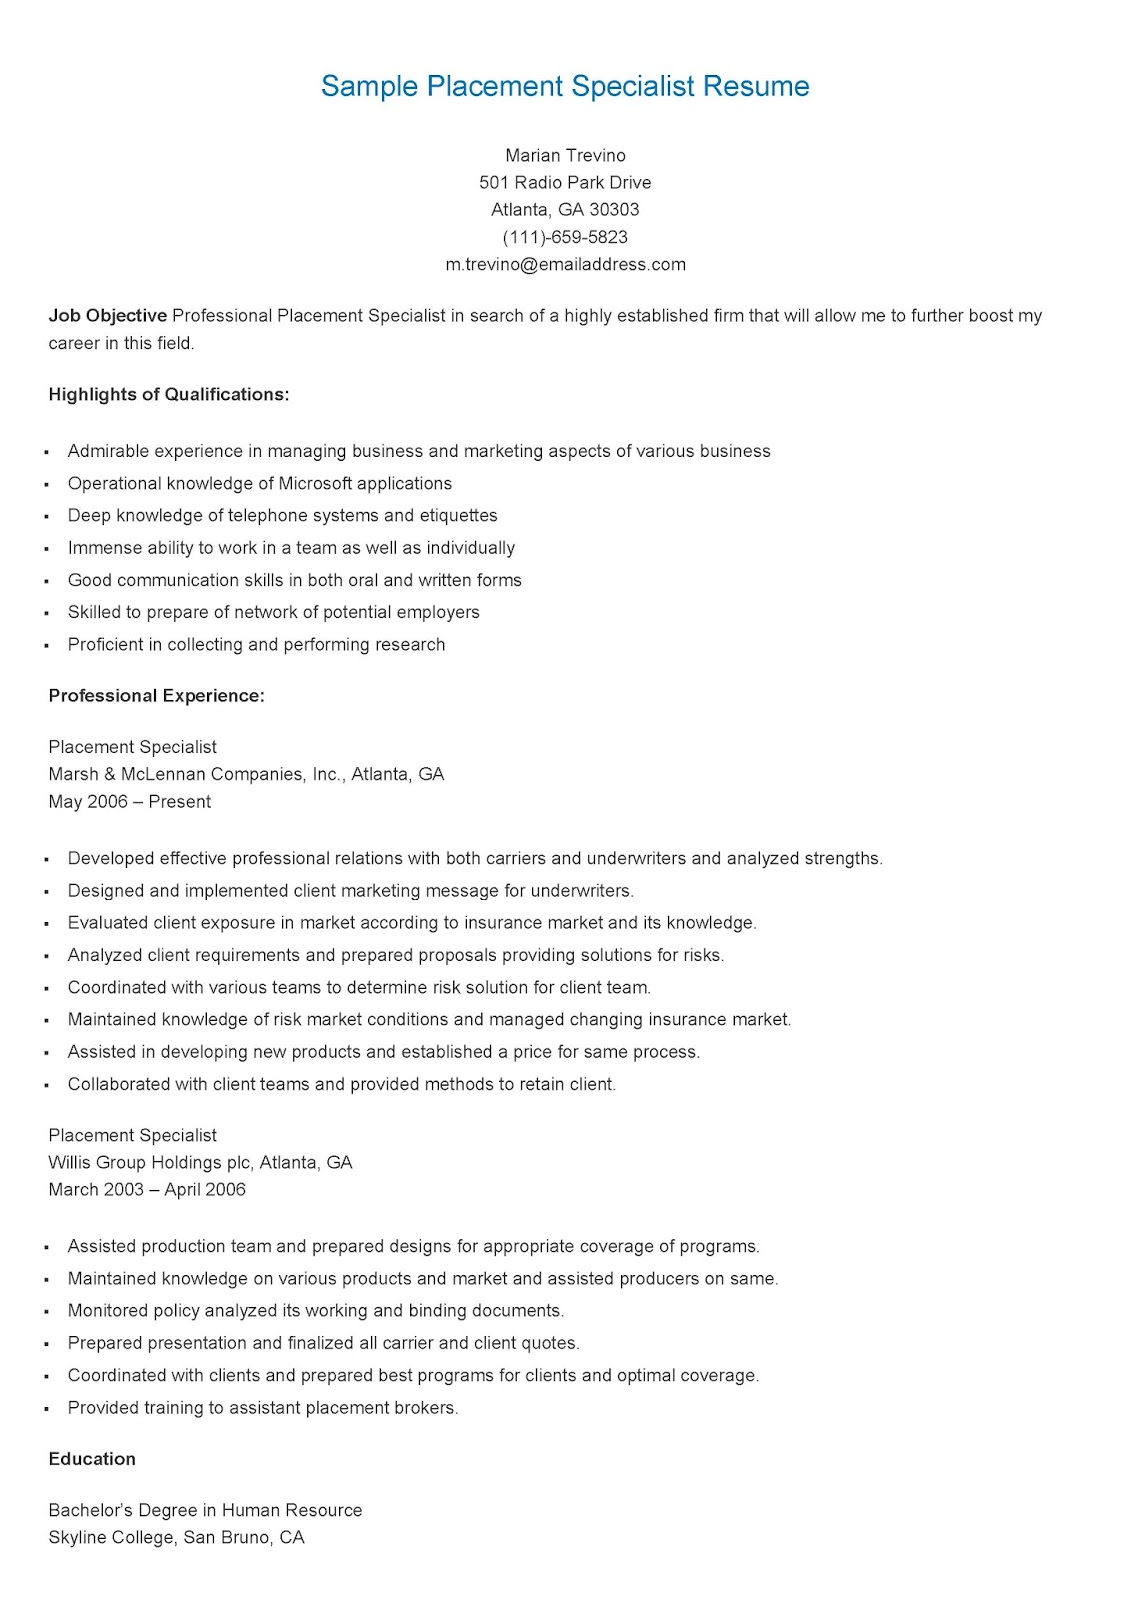 resume samples  sample placement specialist resume